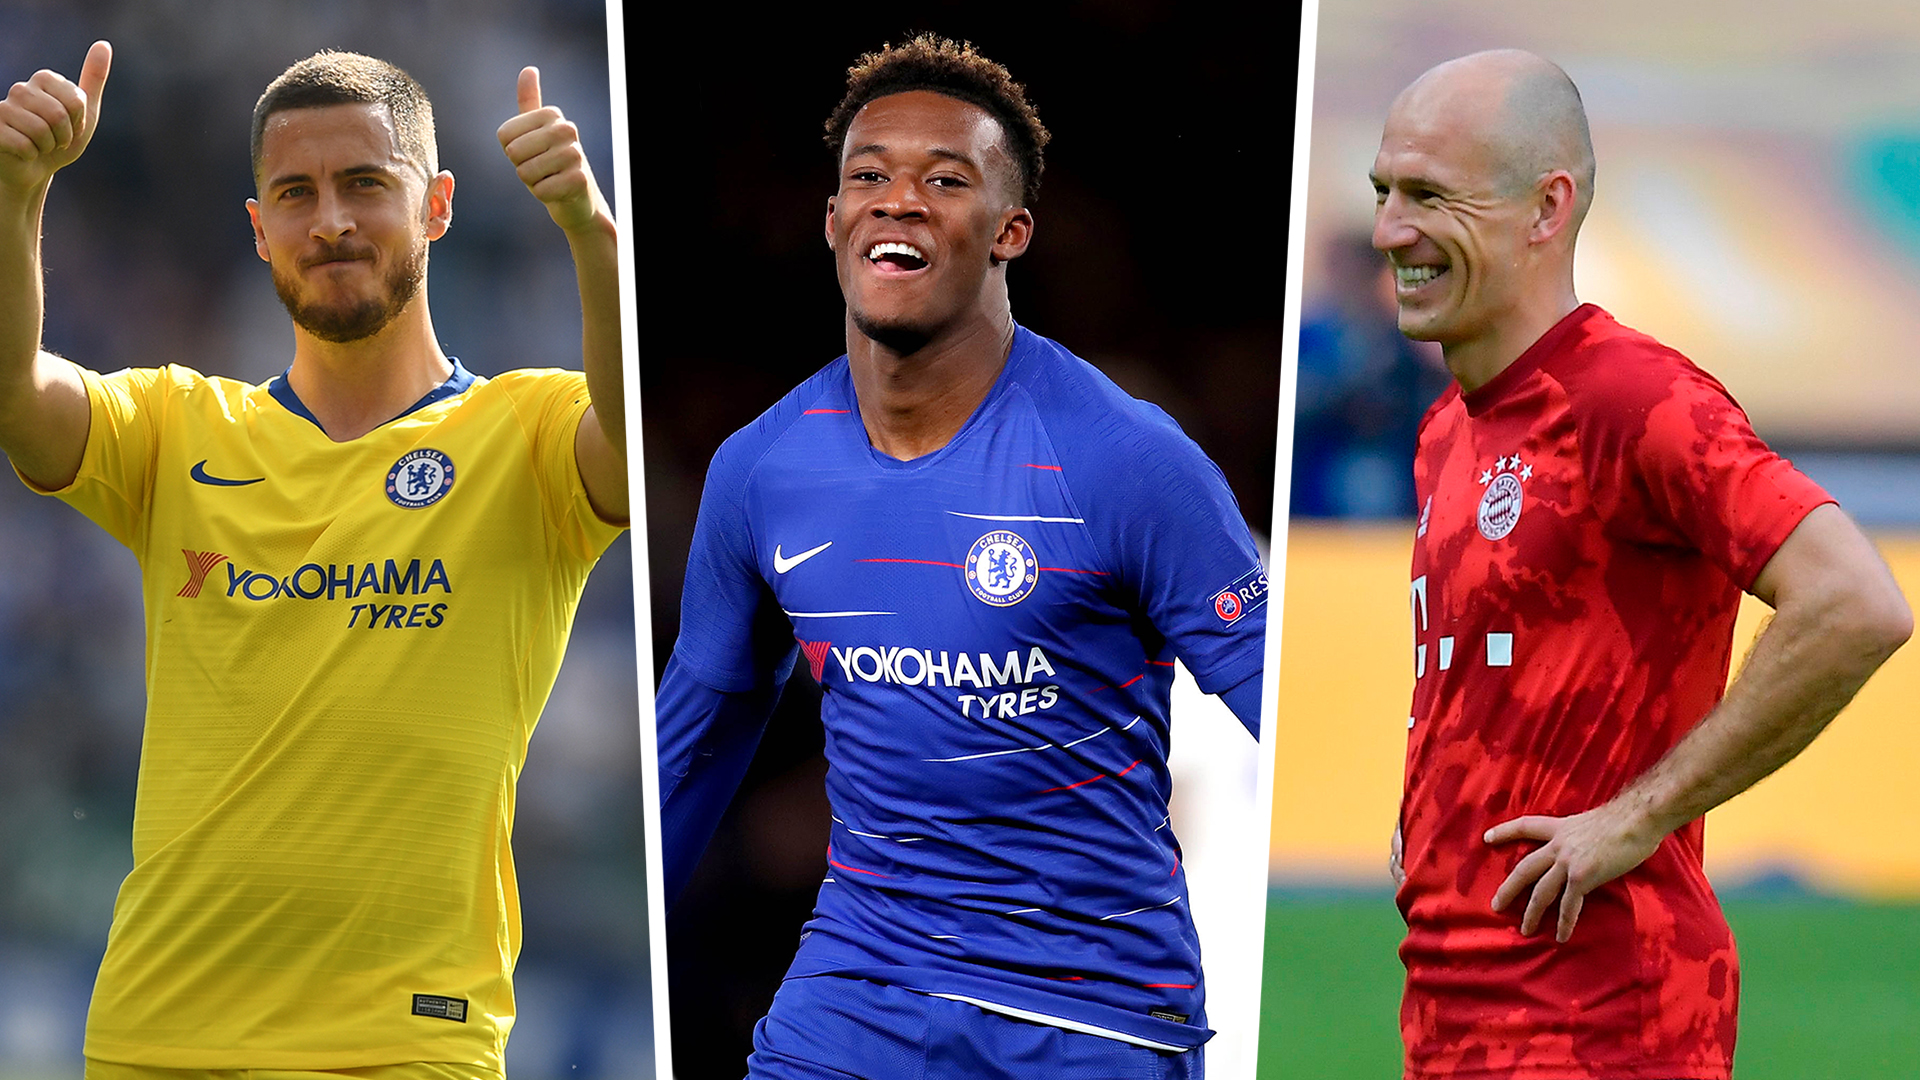 From Robben's heir to Hazard's successor: The story of Hudson-Odoi's Chelsea renewal